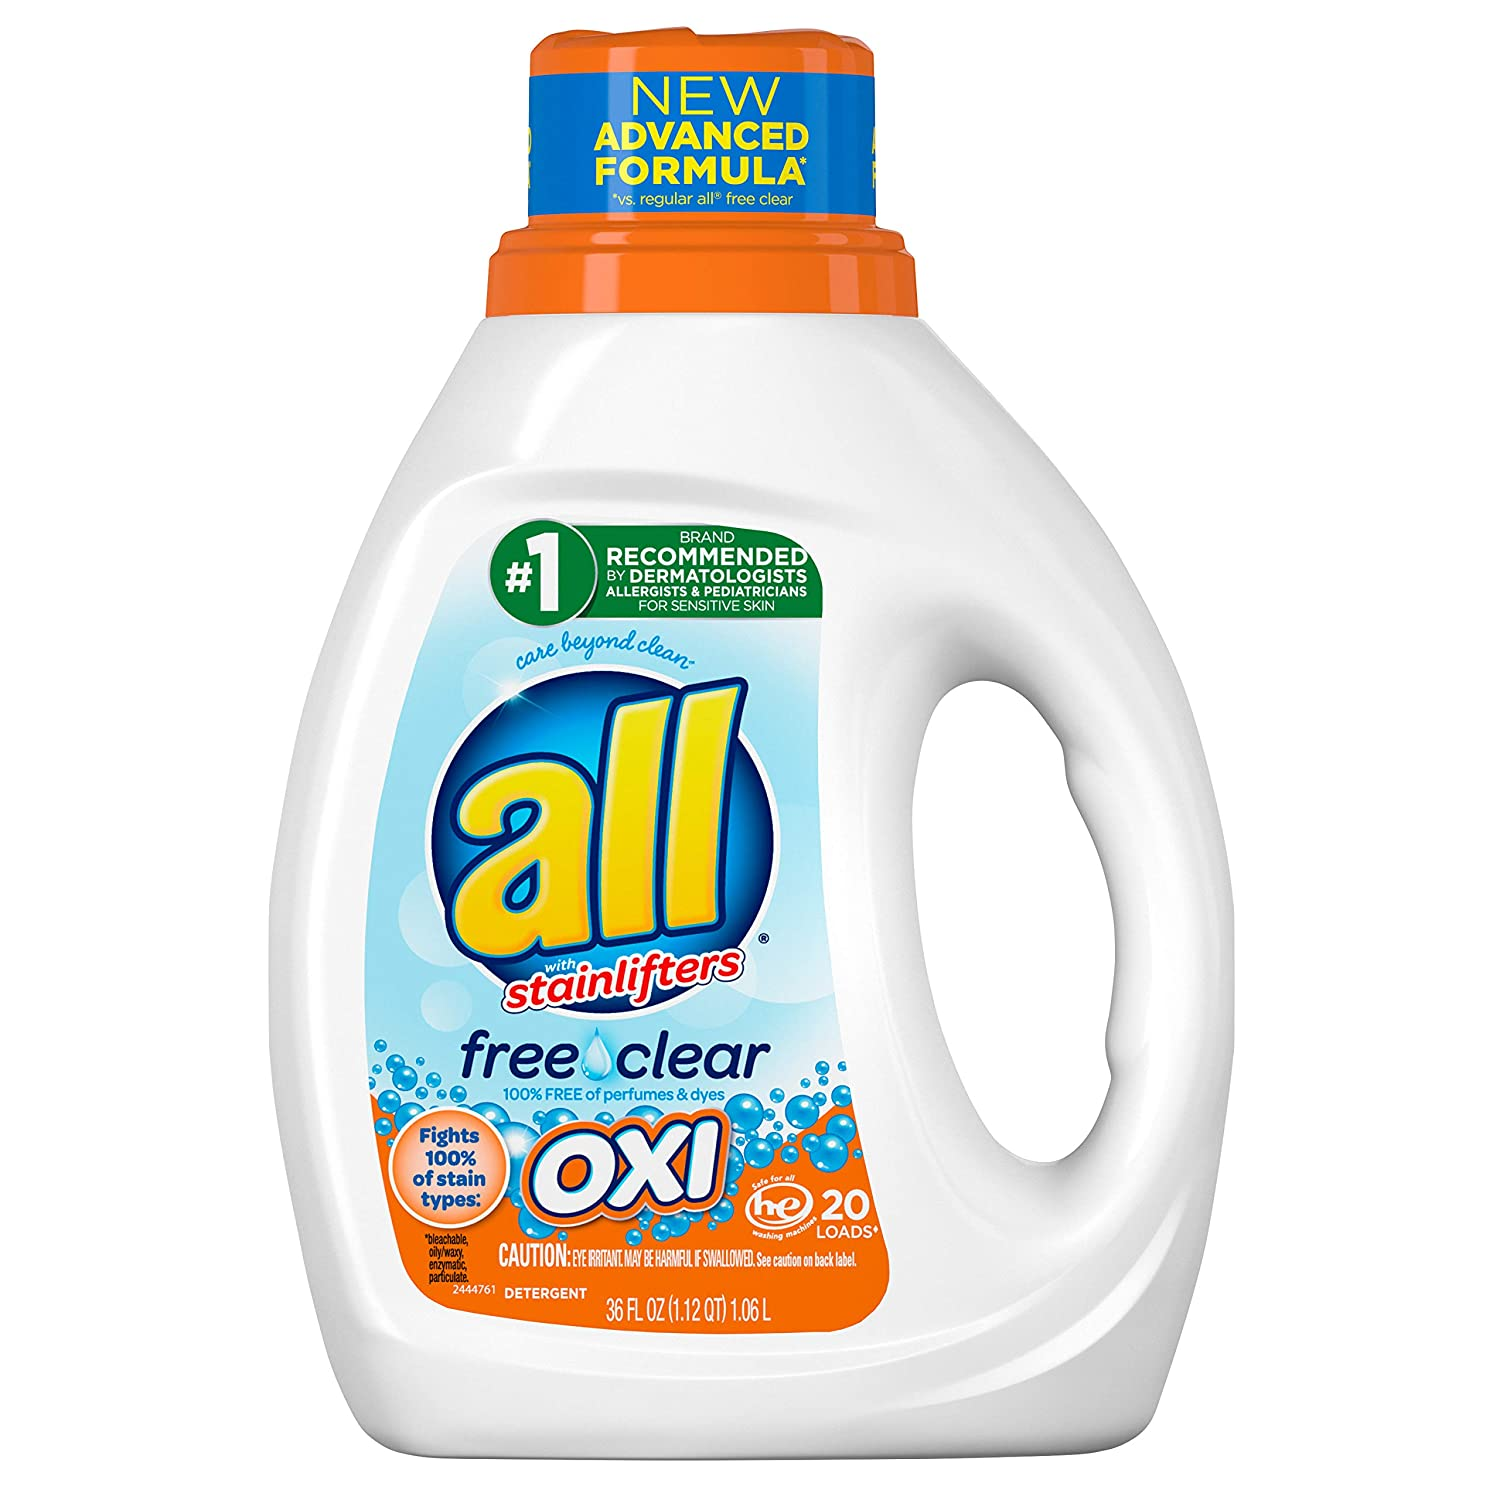 All all Liquid Laundry Detergent with OXI Stain Removers & Whiteners, Free Clear, 36 oz, 20 Loads, 36 fl oz